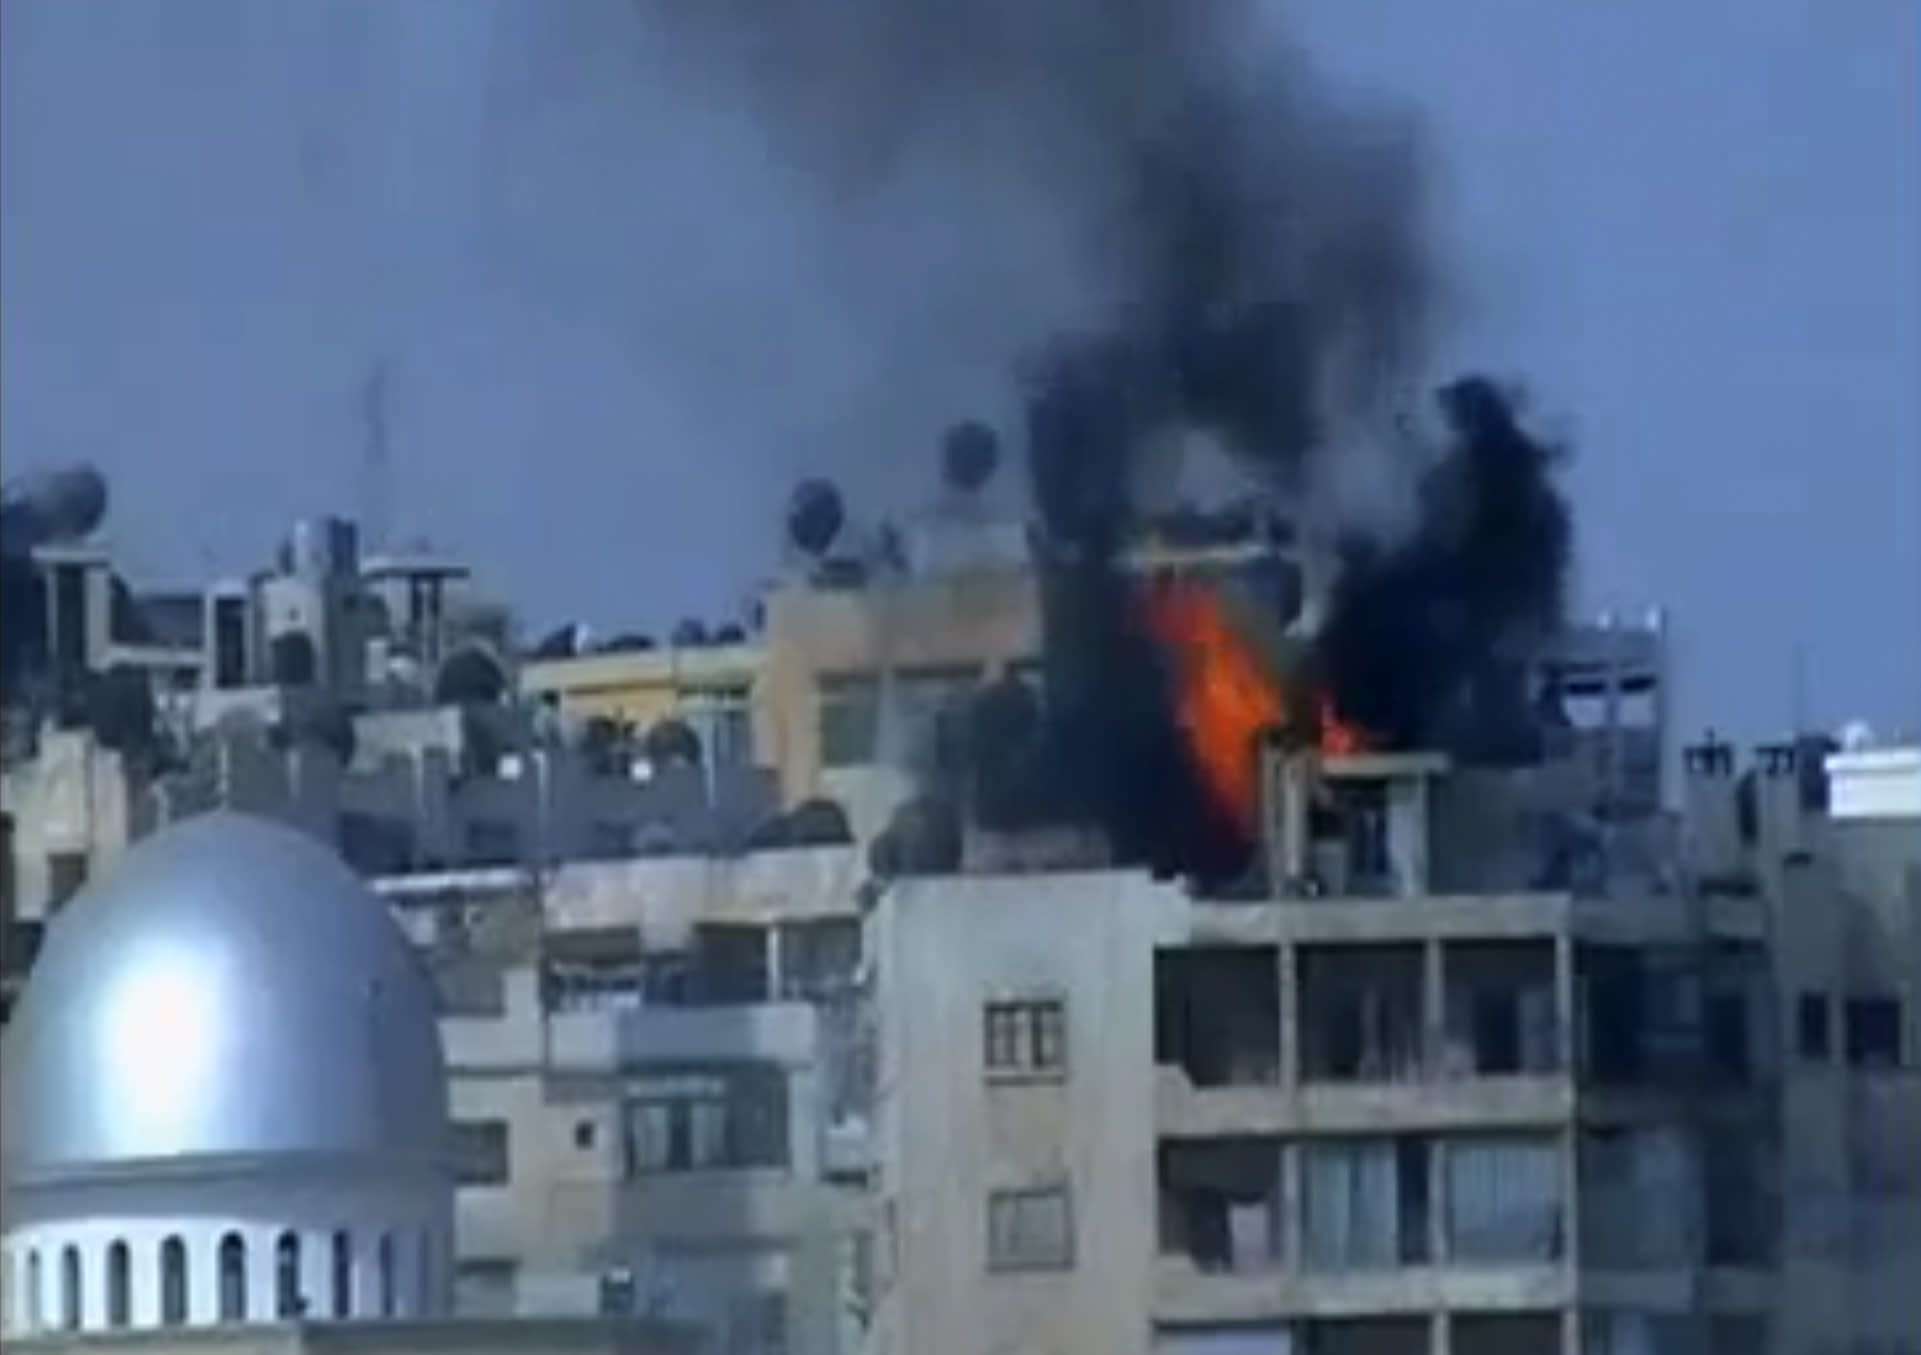 This image made from video provided by Shaam News Network (SNN) and accessed via AP video purports to show smoke and flames from shelling in the Izaa neighborhood of Aleppo, Syria, Friday, Aug. 31, 2012. Syrian rebels have begun a major operation in the Aleppo region, aiming to strike at security compounds and bases around Syria's largest city, activists said Friday. It would be evidence that weeks of intense bombardments by the Syrian military, including airstrikes, have failed to dislodge the rebels. Instead, fighting rages across the country in a 17-month civil war that shows no sign of ending soon. (AP Photo/Shaam News Network SNN via AP video) THE ASSOCIATED PRESS HAS NO WAY OF INDEPENDENTLY VERIFYING THE CONTENT, LOCATION OR DATE OF THIS PICTURE.